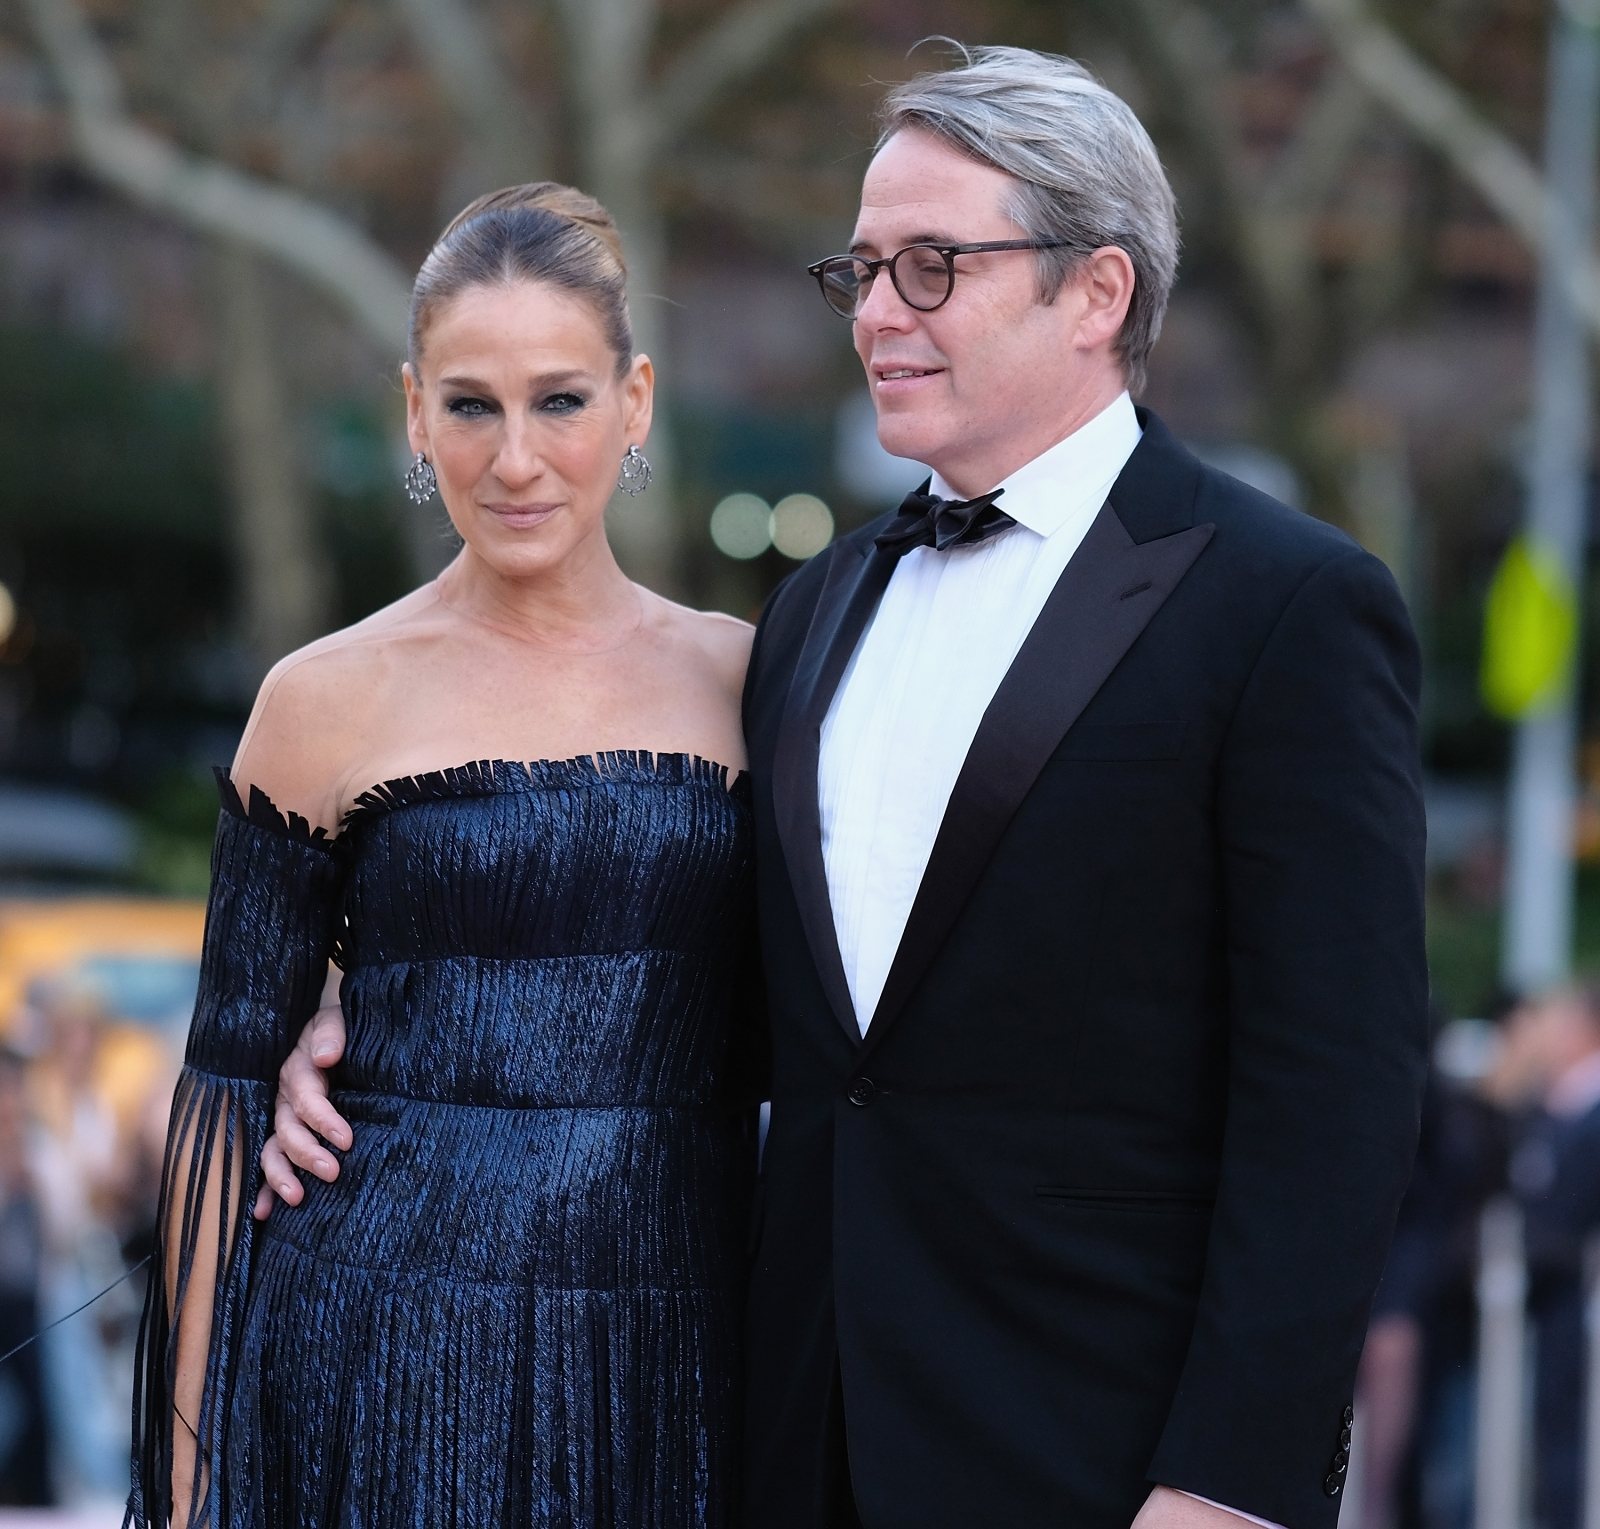 'Sex and the City' sequel is dead: Sarah Jessica Parker